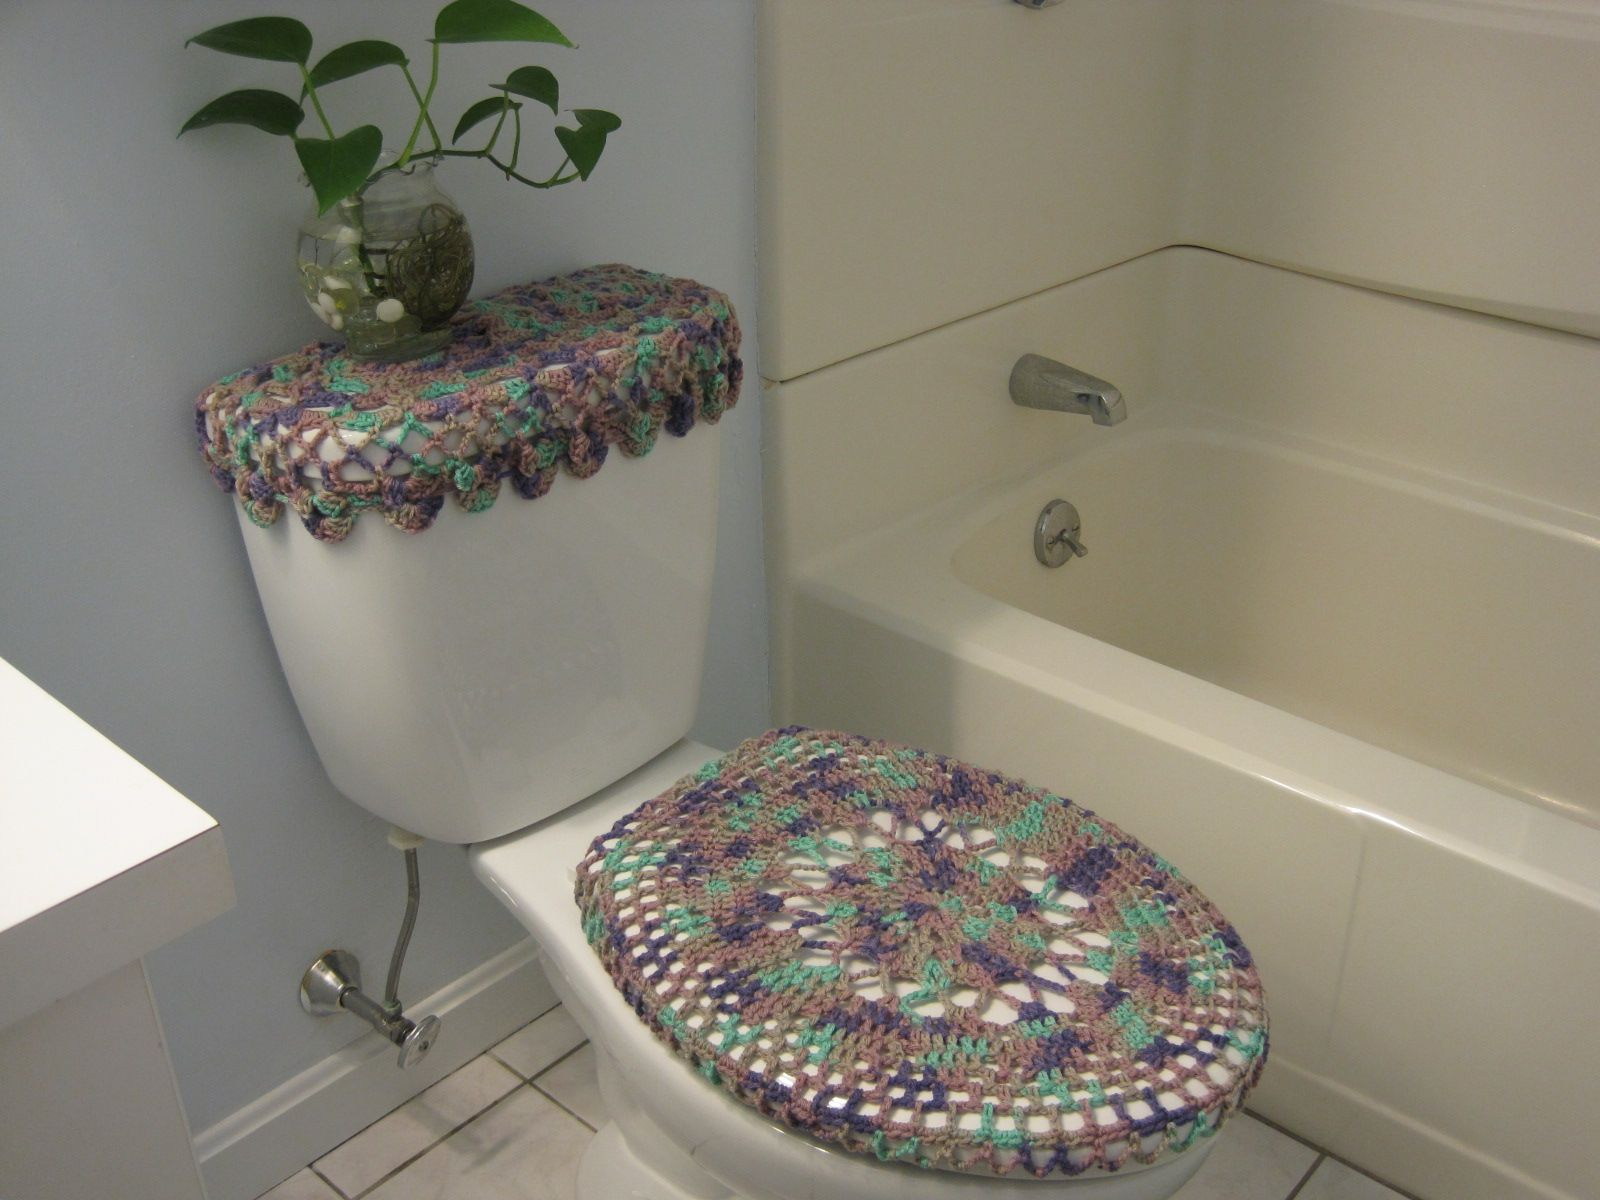 Crochet Covers For Toilet Seat Amp Toilet Tank Lid